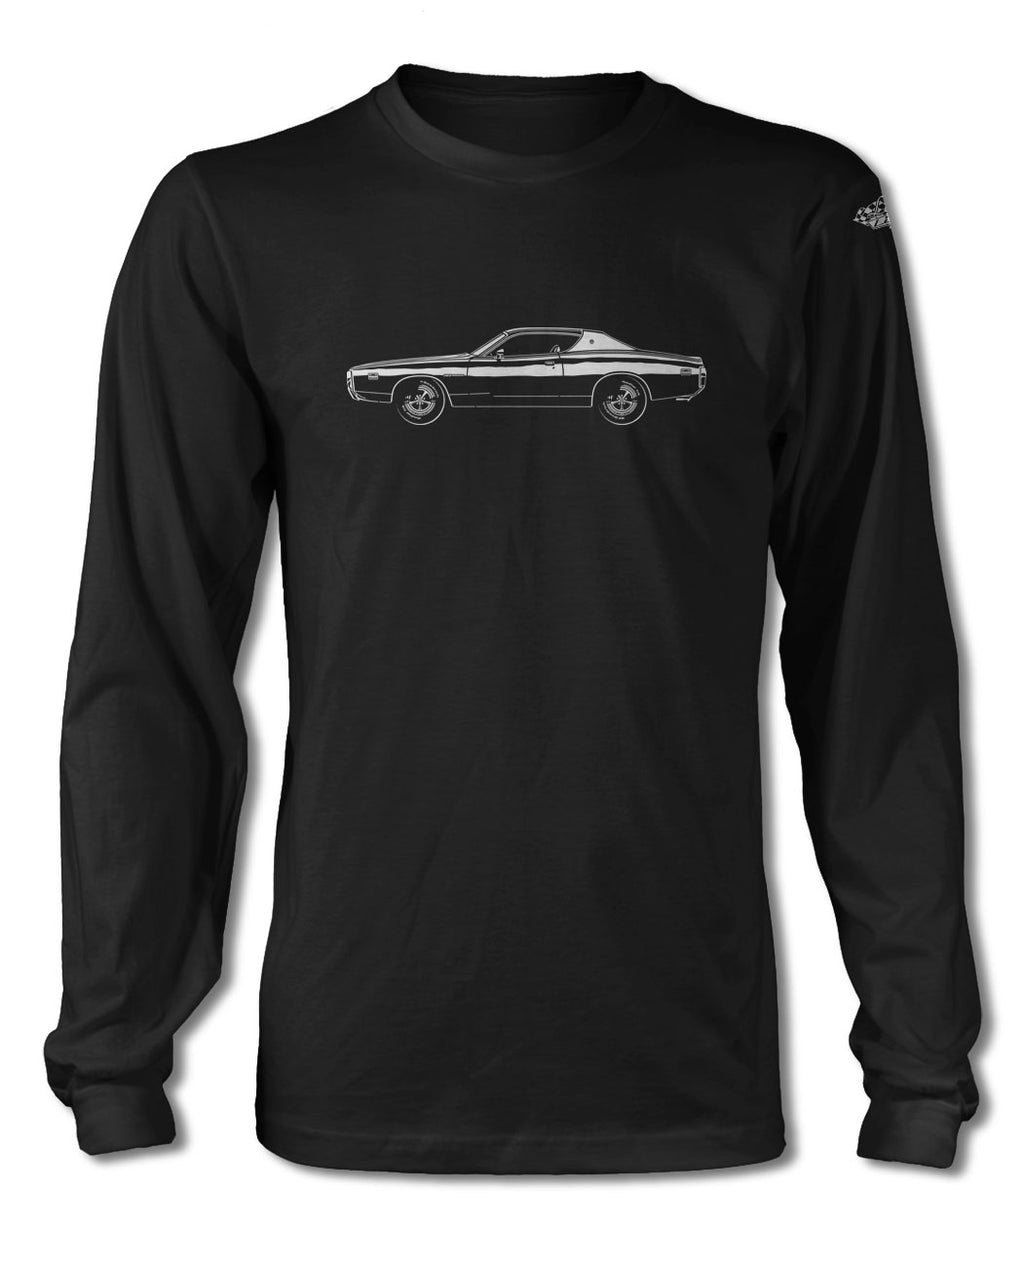 1971 Dodge Charger SE 383 Magnum Hardtop T-Shirt - Long Sleeves - Side View